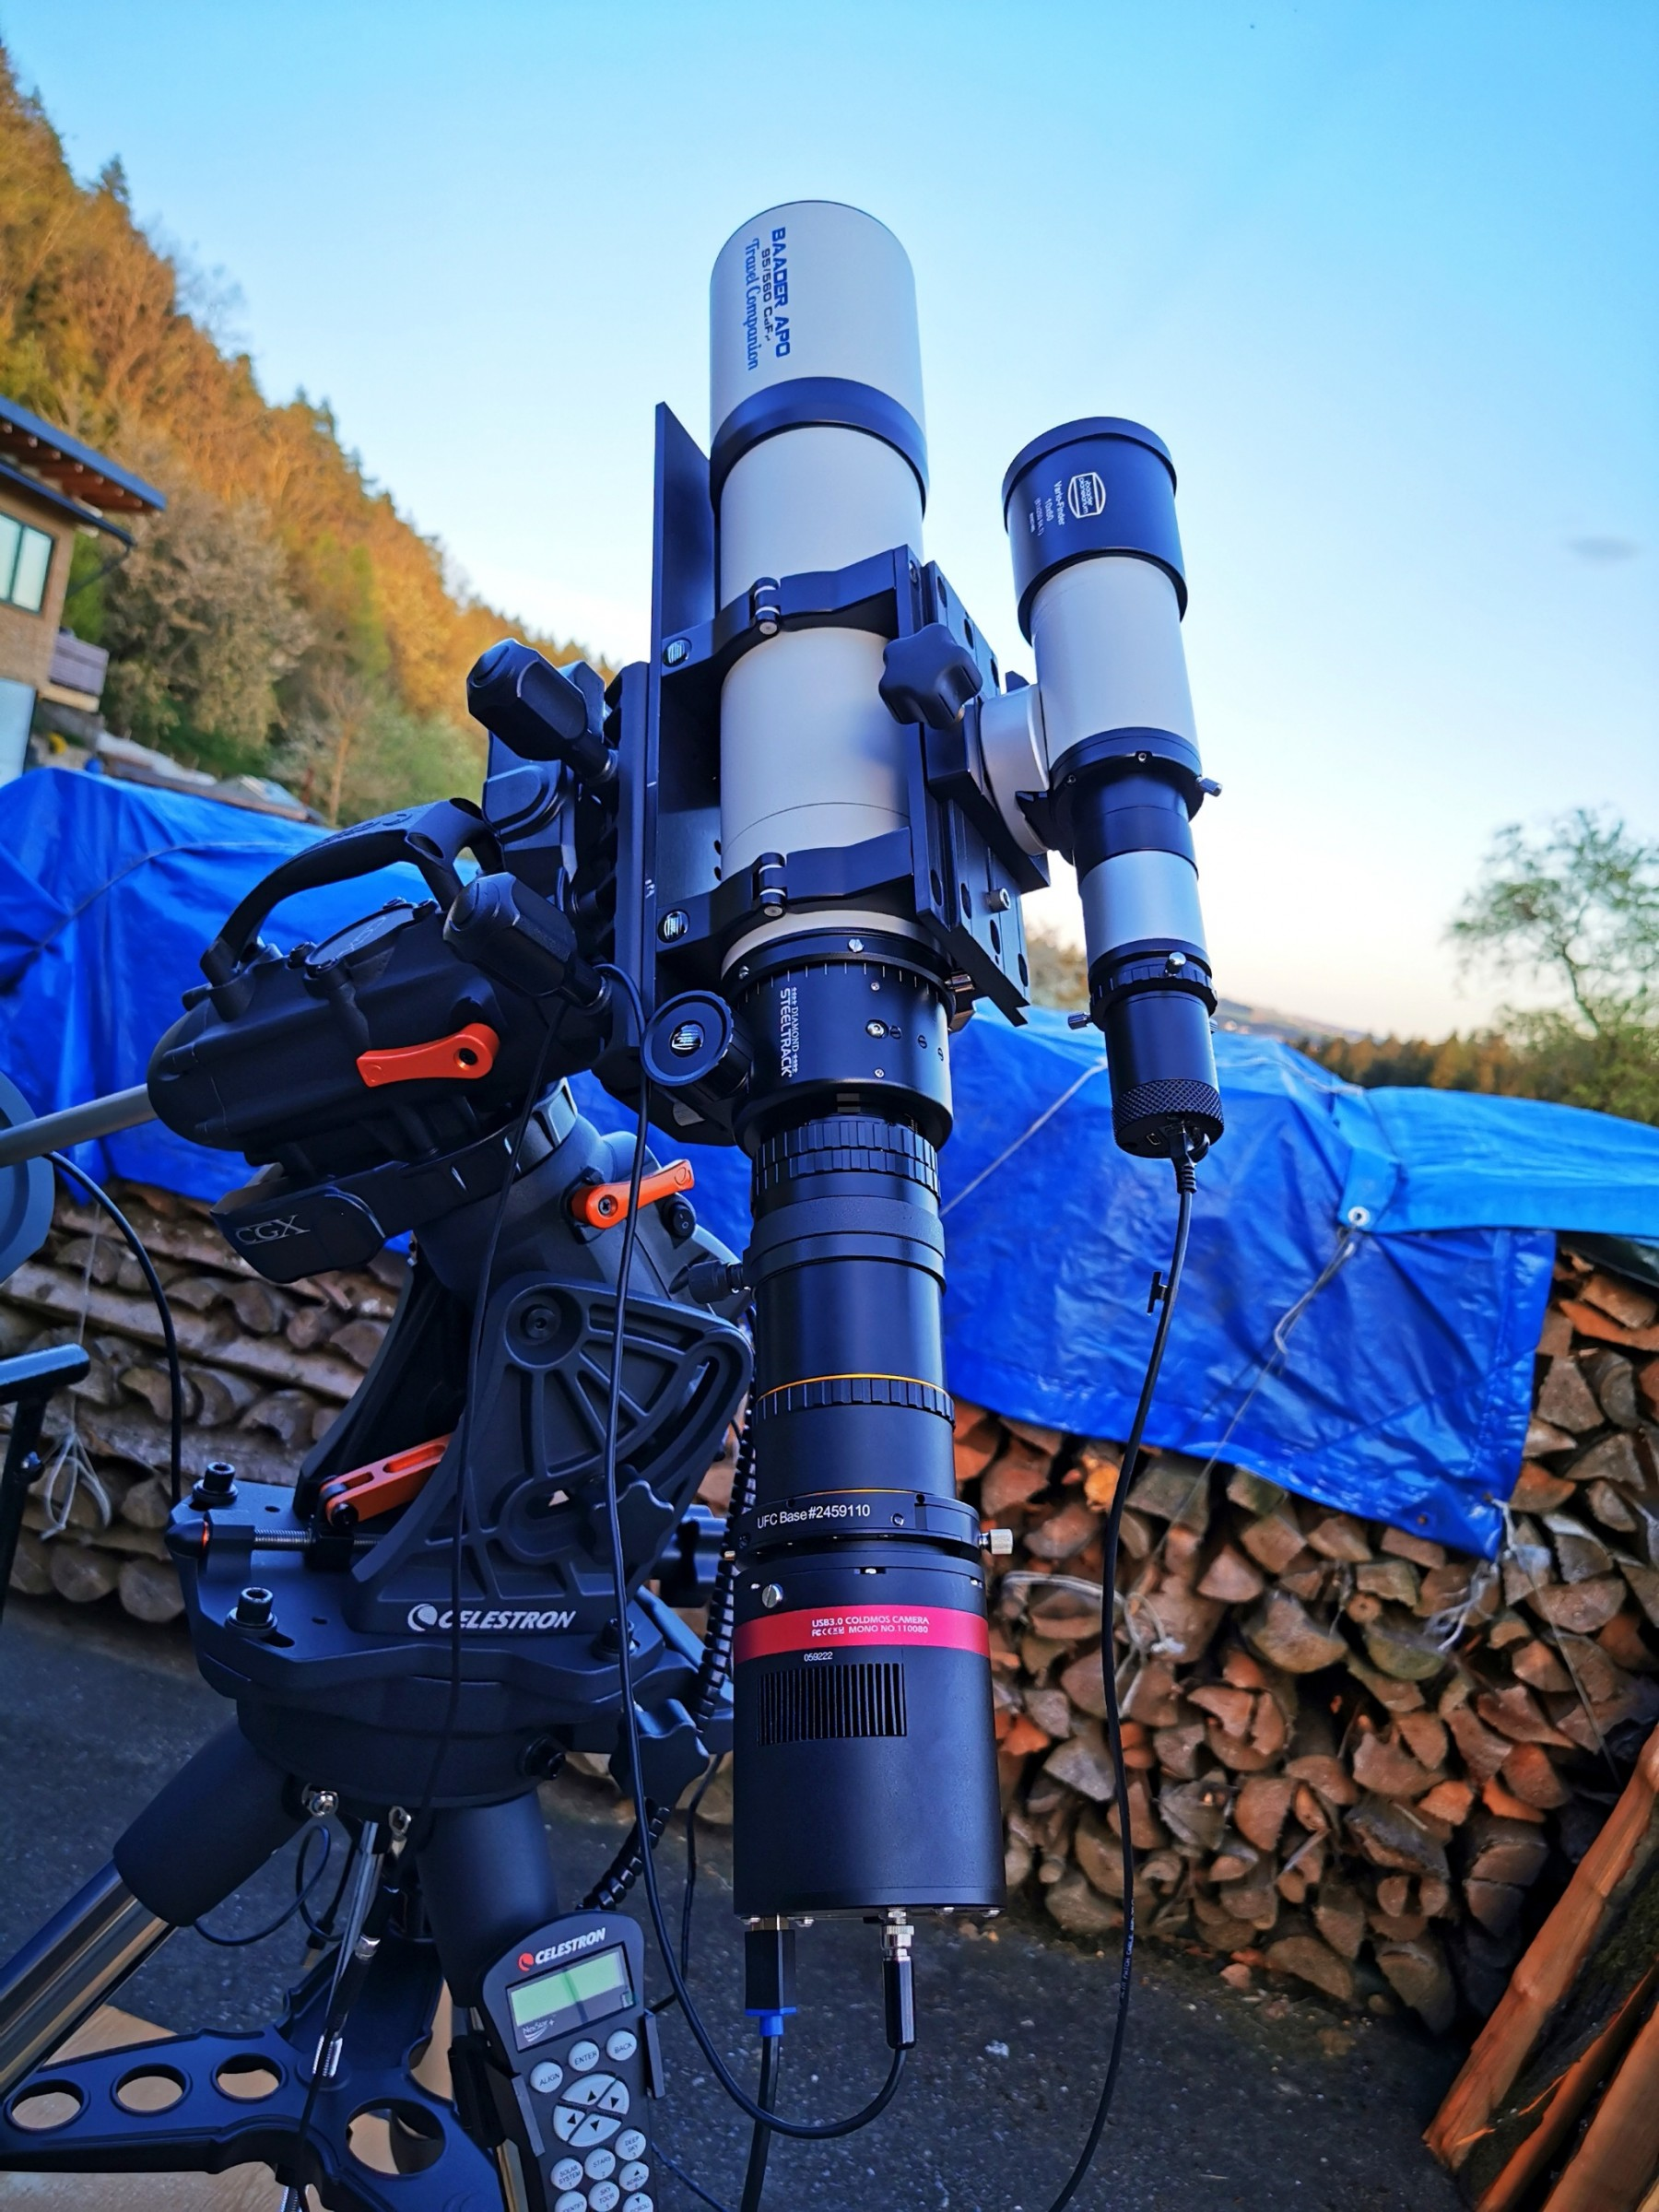 Application image: Baader Apo 95/580 with Celestron CGX Mount